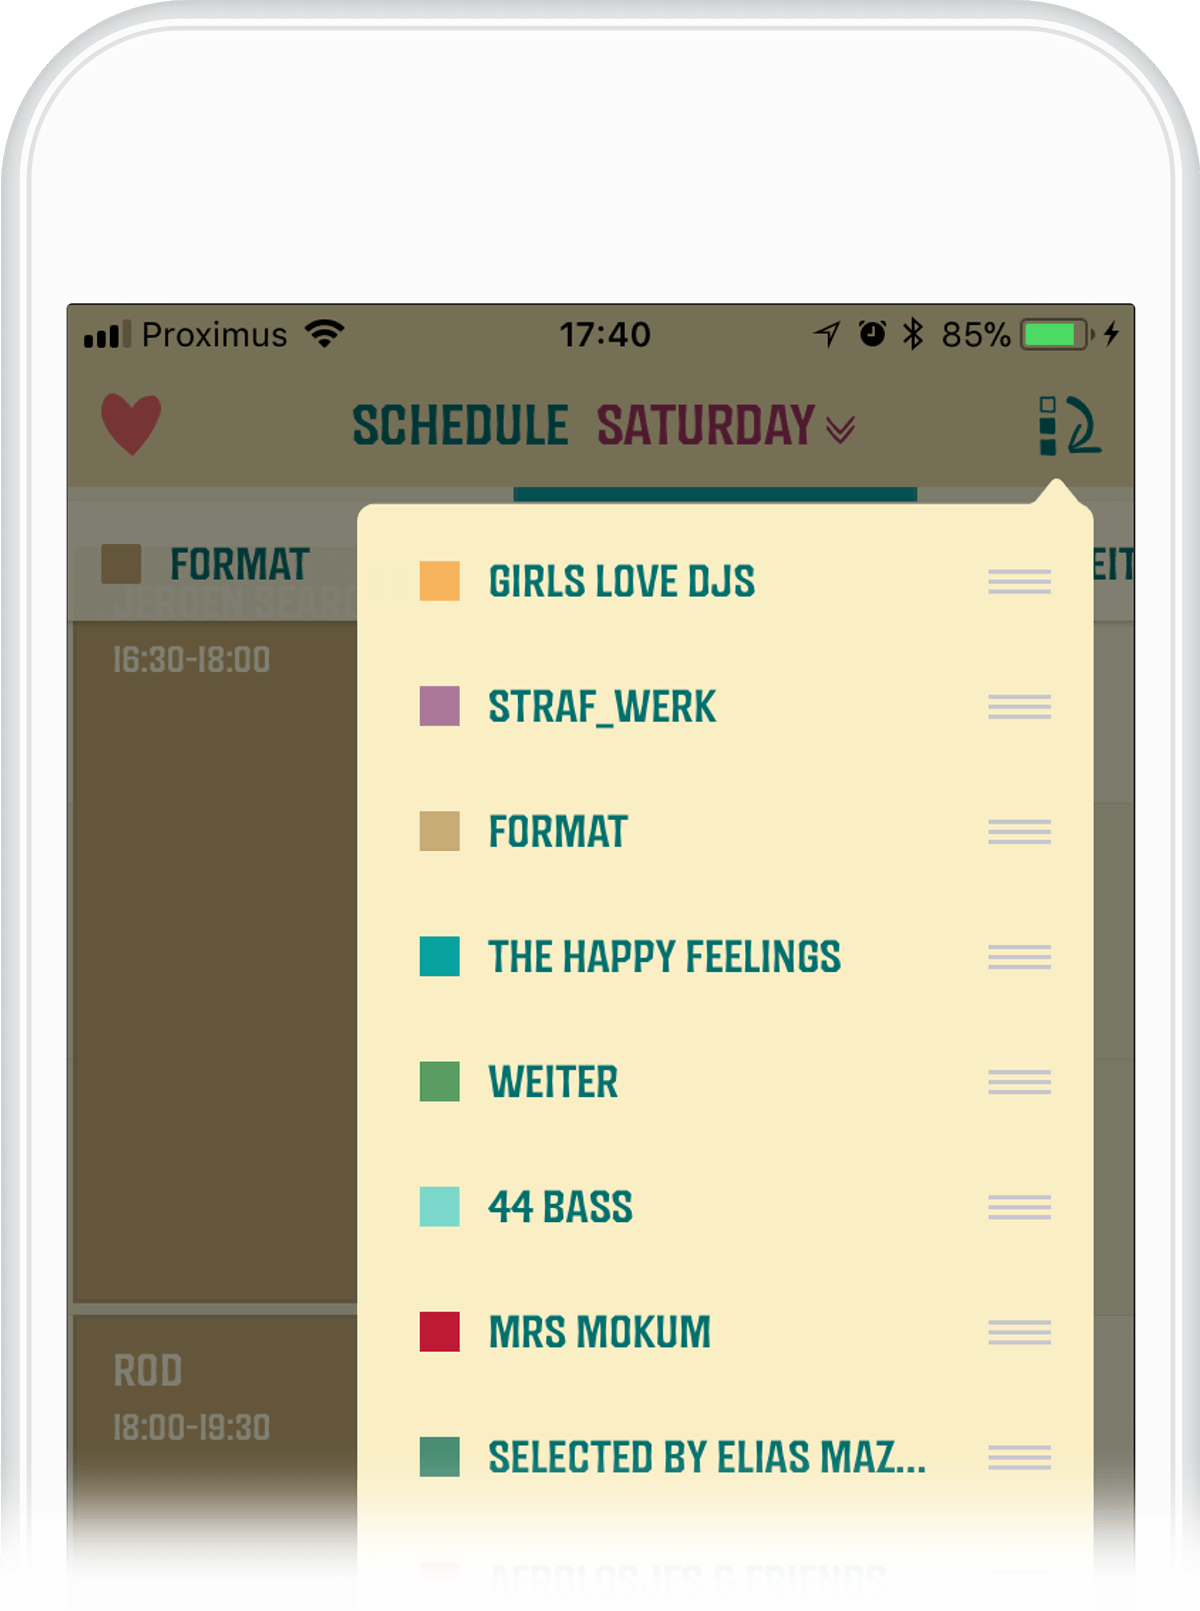 Users can select favourites to create their own personalized schedule and receive reminders before their favourite bands take the stage.